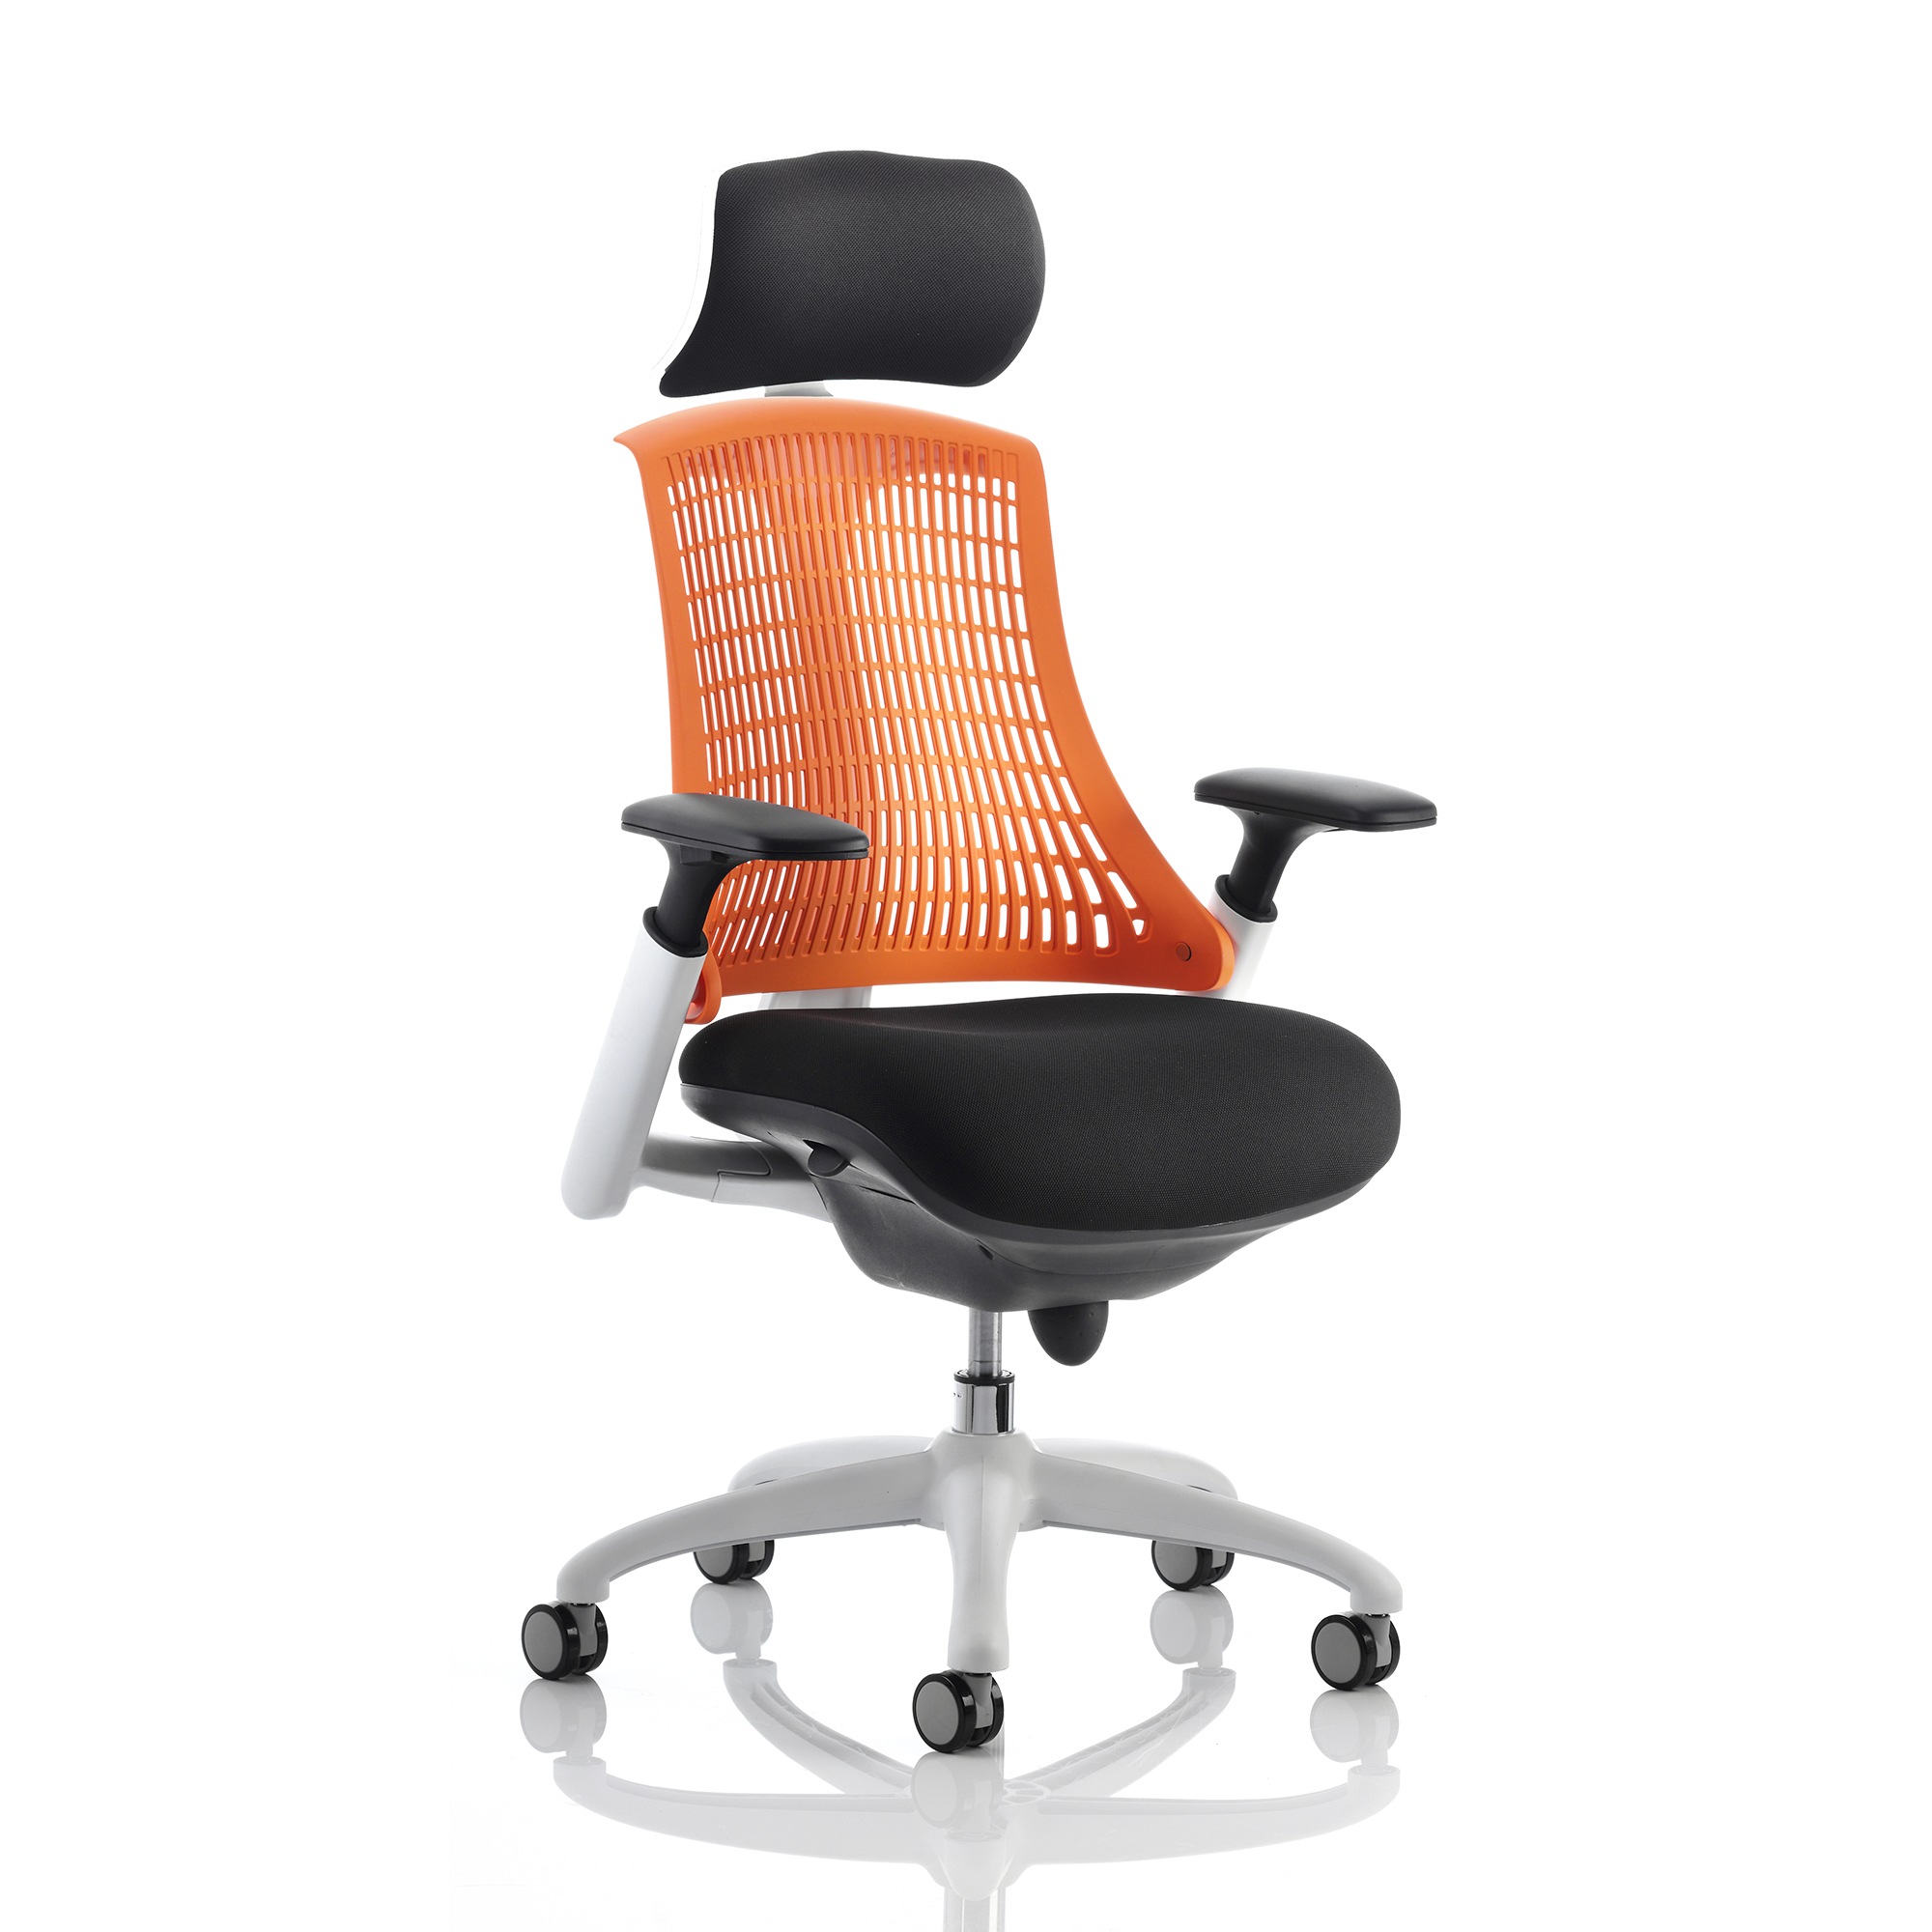 Guest seating Trexus Flex Task Operator Chair With Arms And Headrest Blk Fabric Seat Orange Back White Frame Ref KC0091